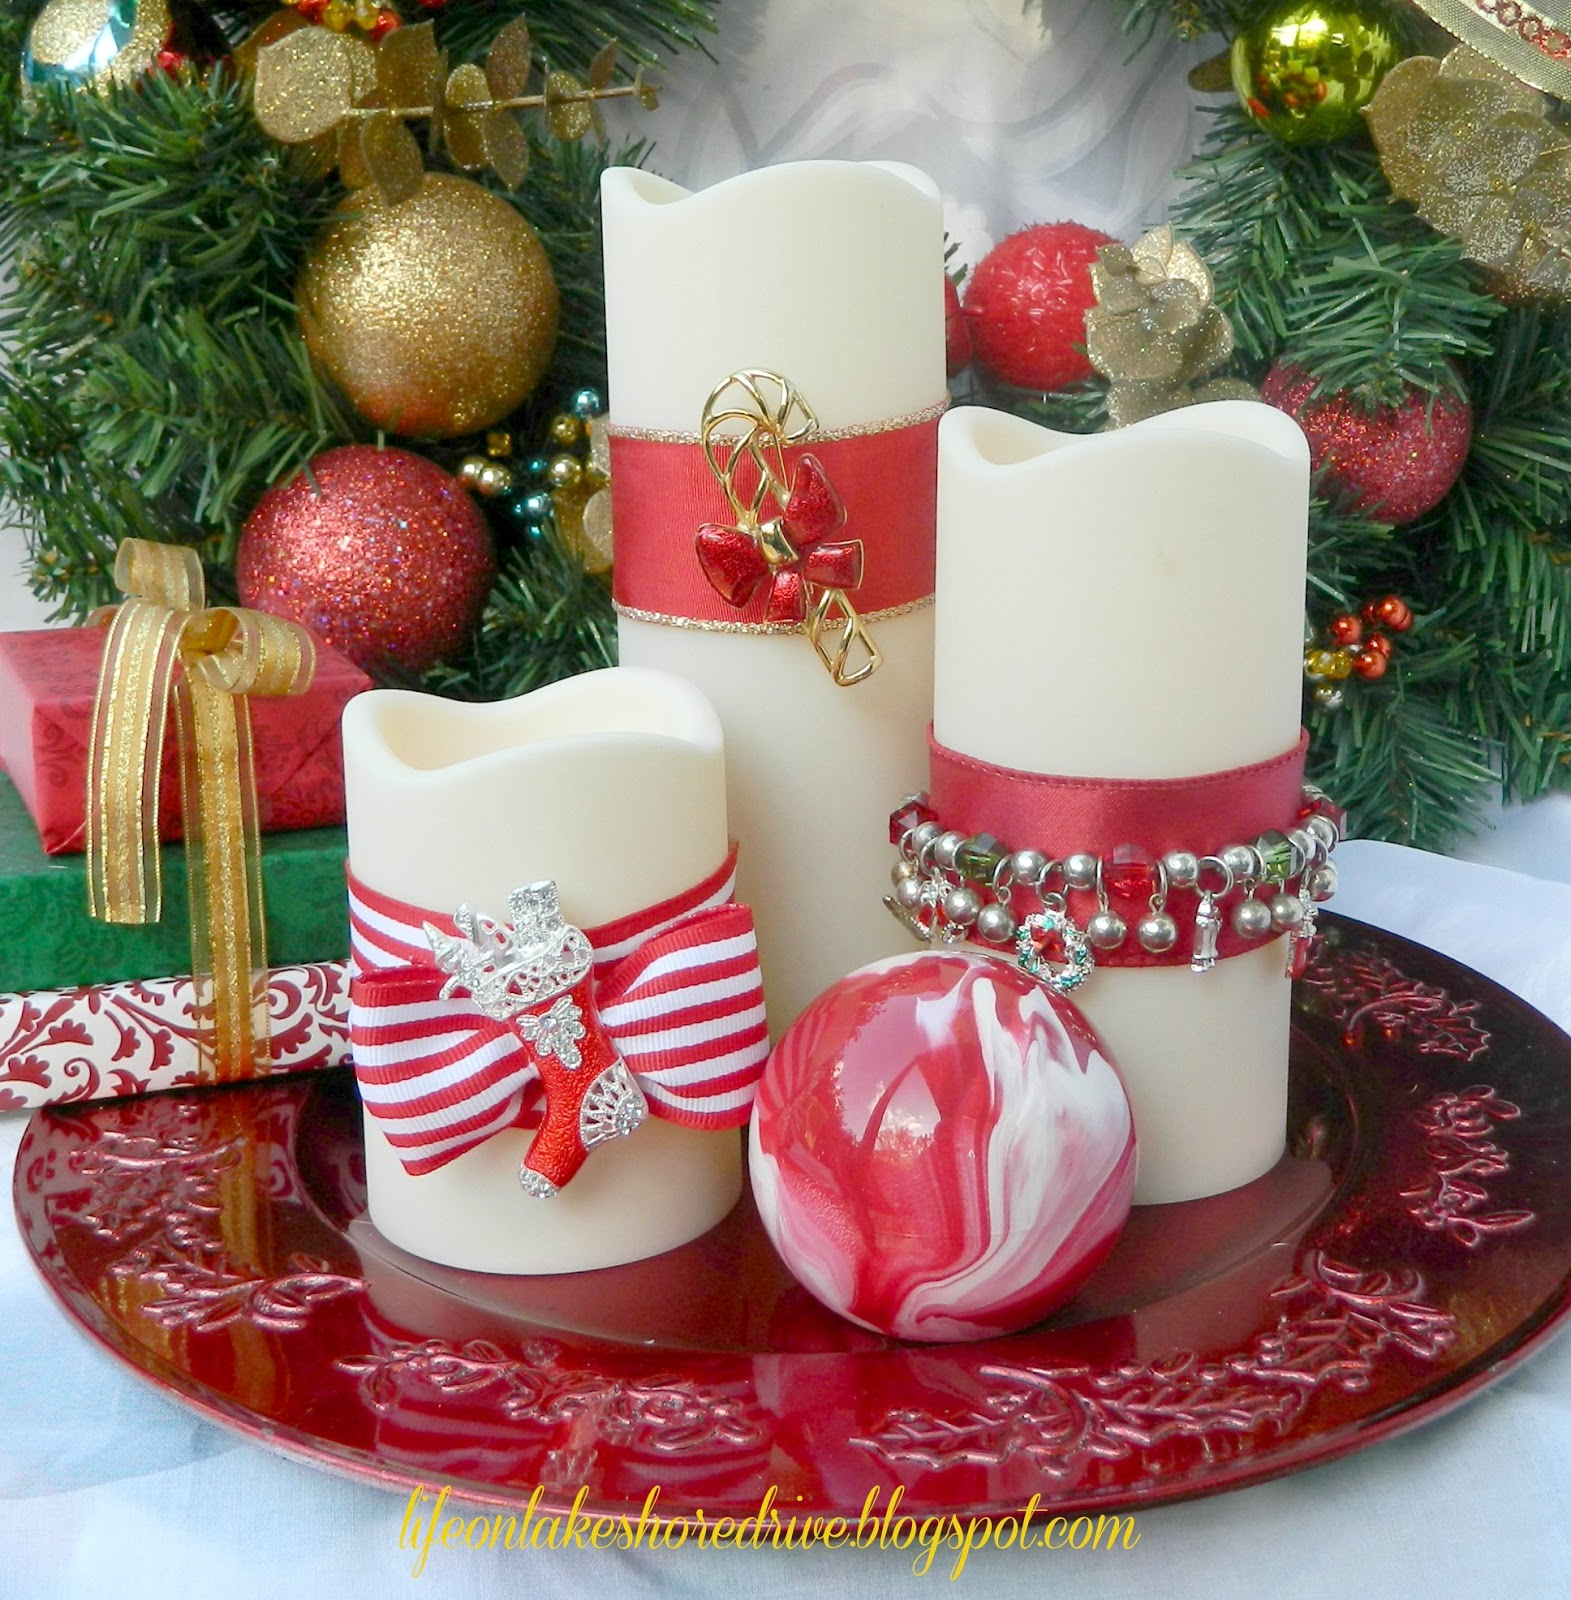 DIY Christmas Jewelry for Candles |Life on Lakeshore Drive